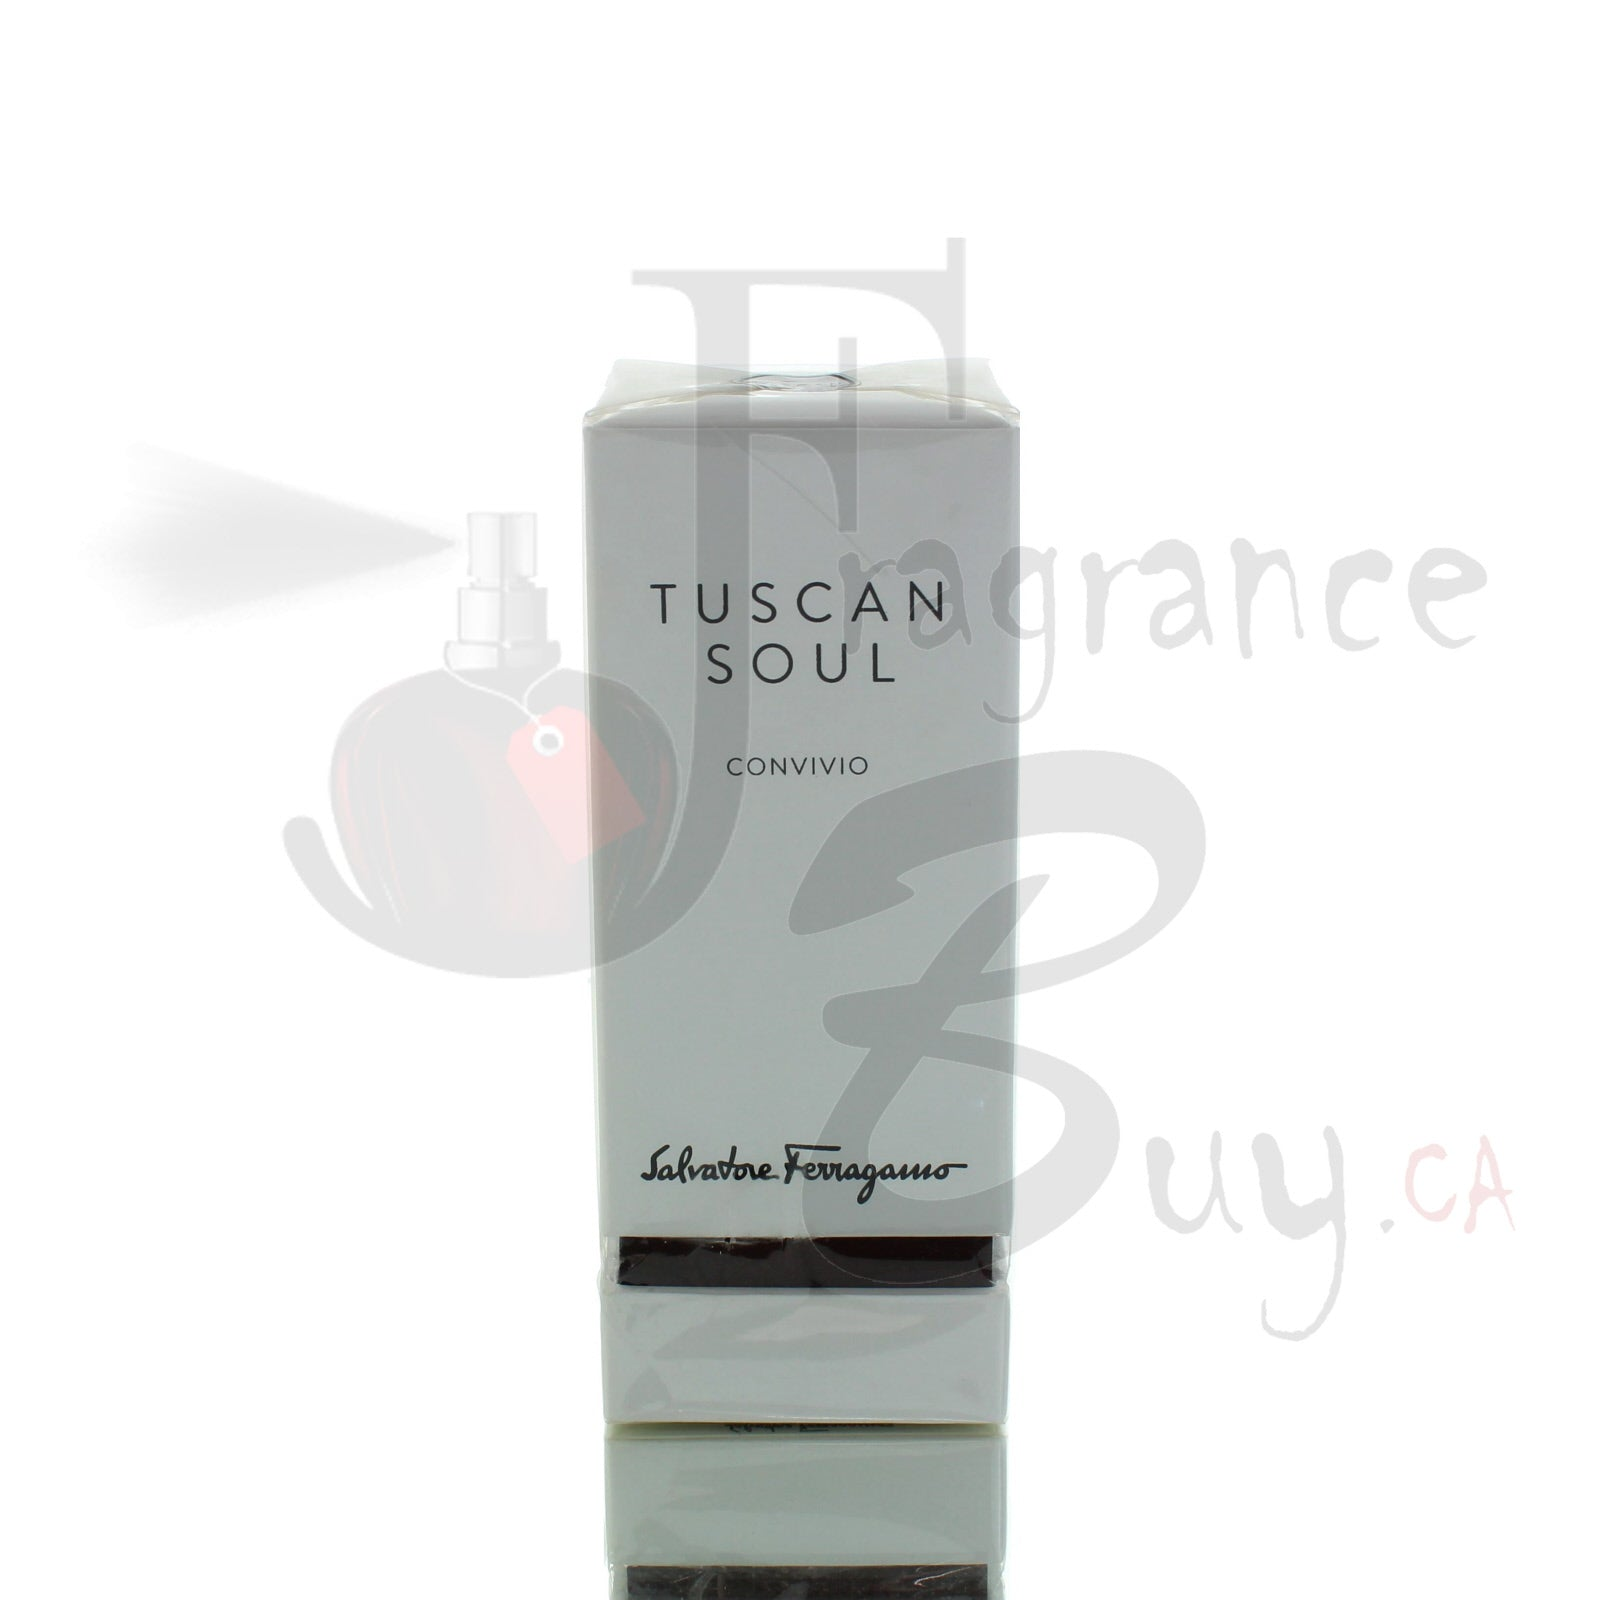 Salvatore Ferragamo Tuscan Scent Convivio For Man/Woman